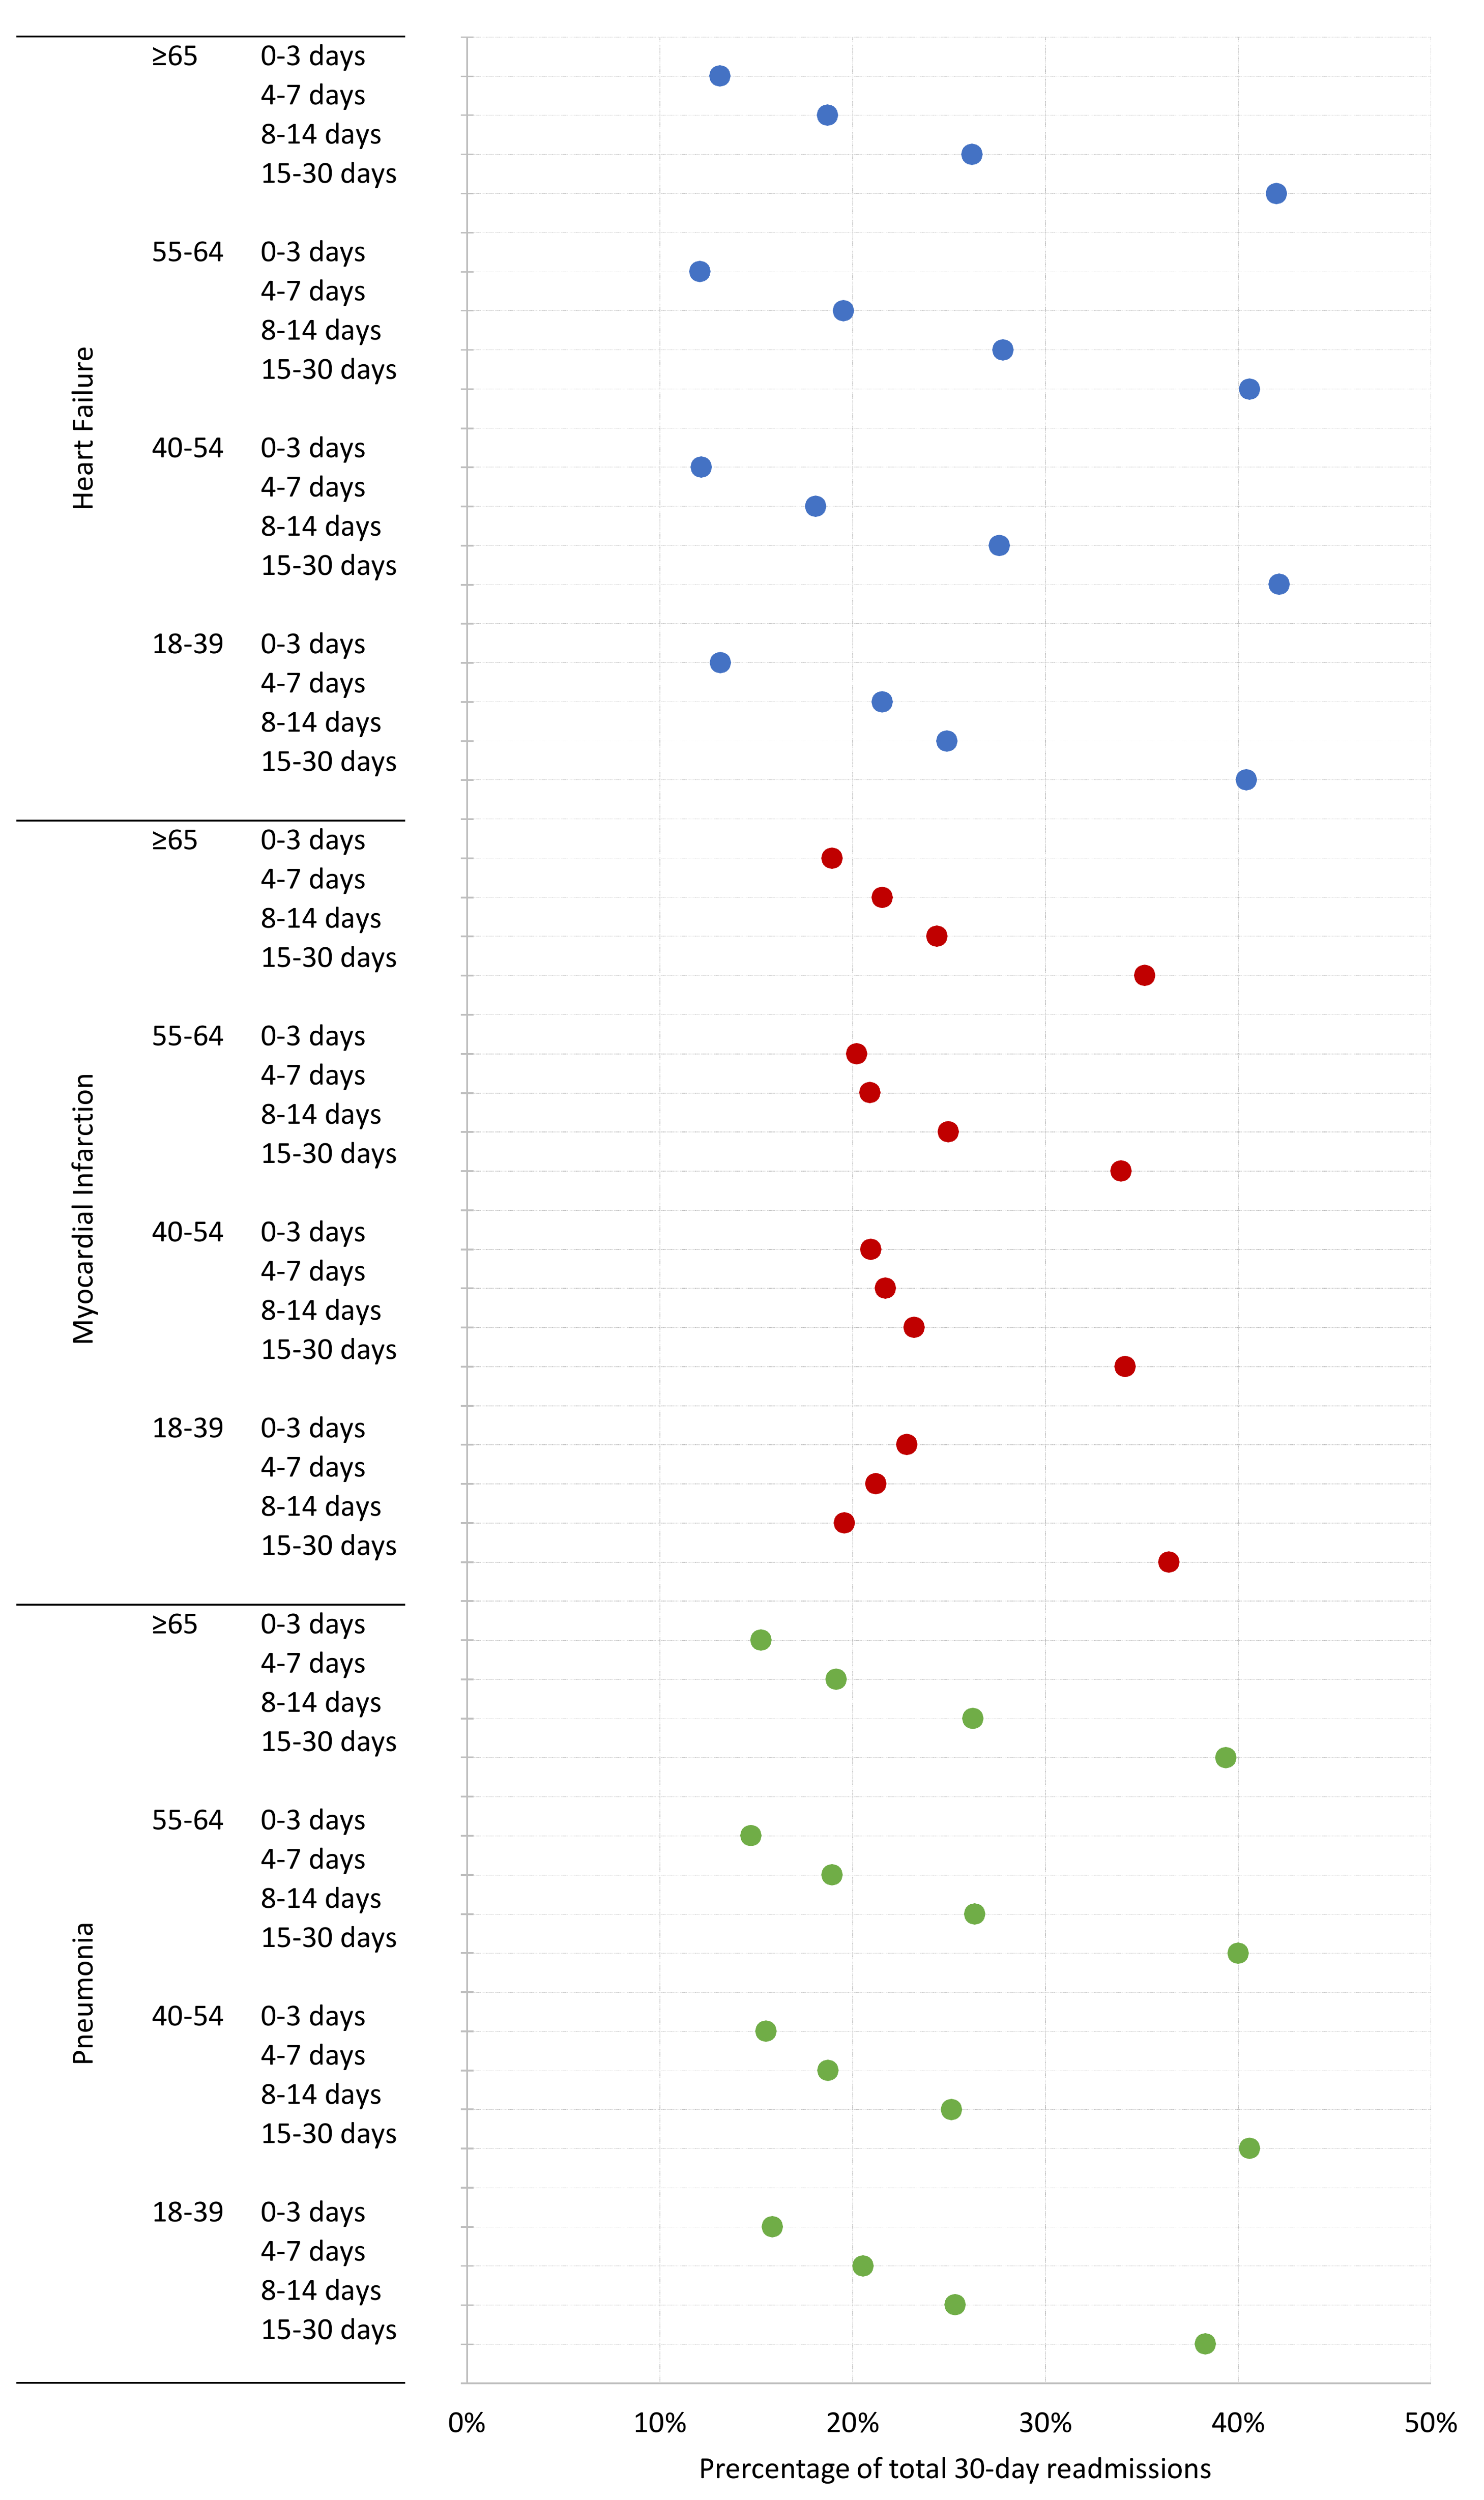 Percentage of readmissions by consecutive time periods following hospital discharge across age groups for HF, AMI, and pneumonia.